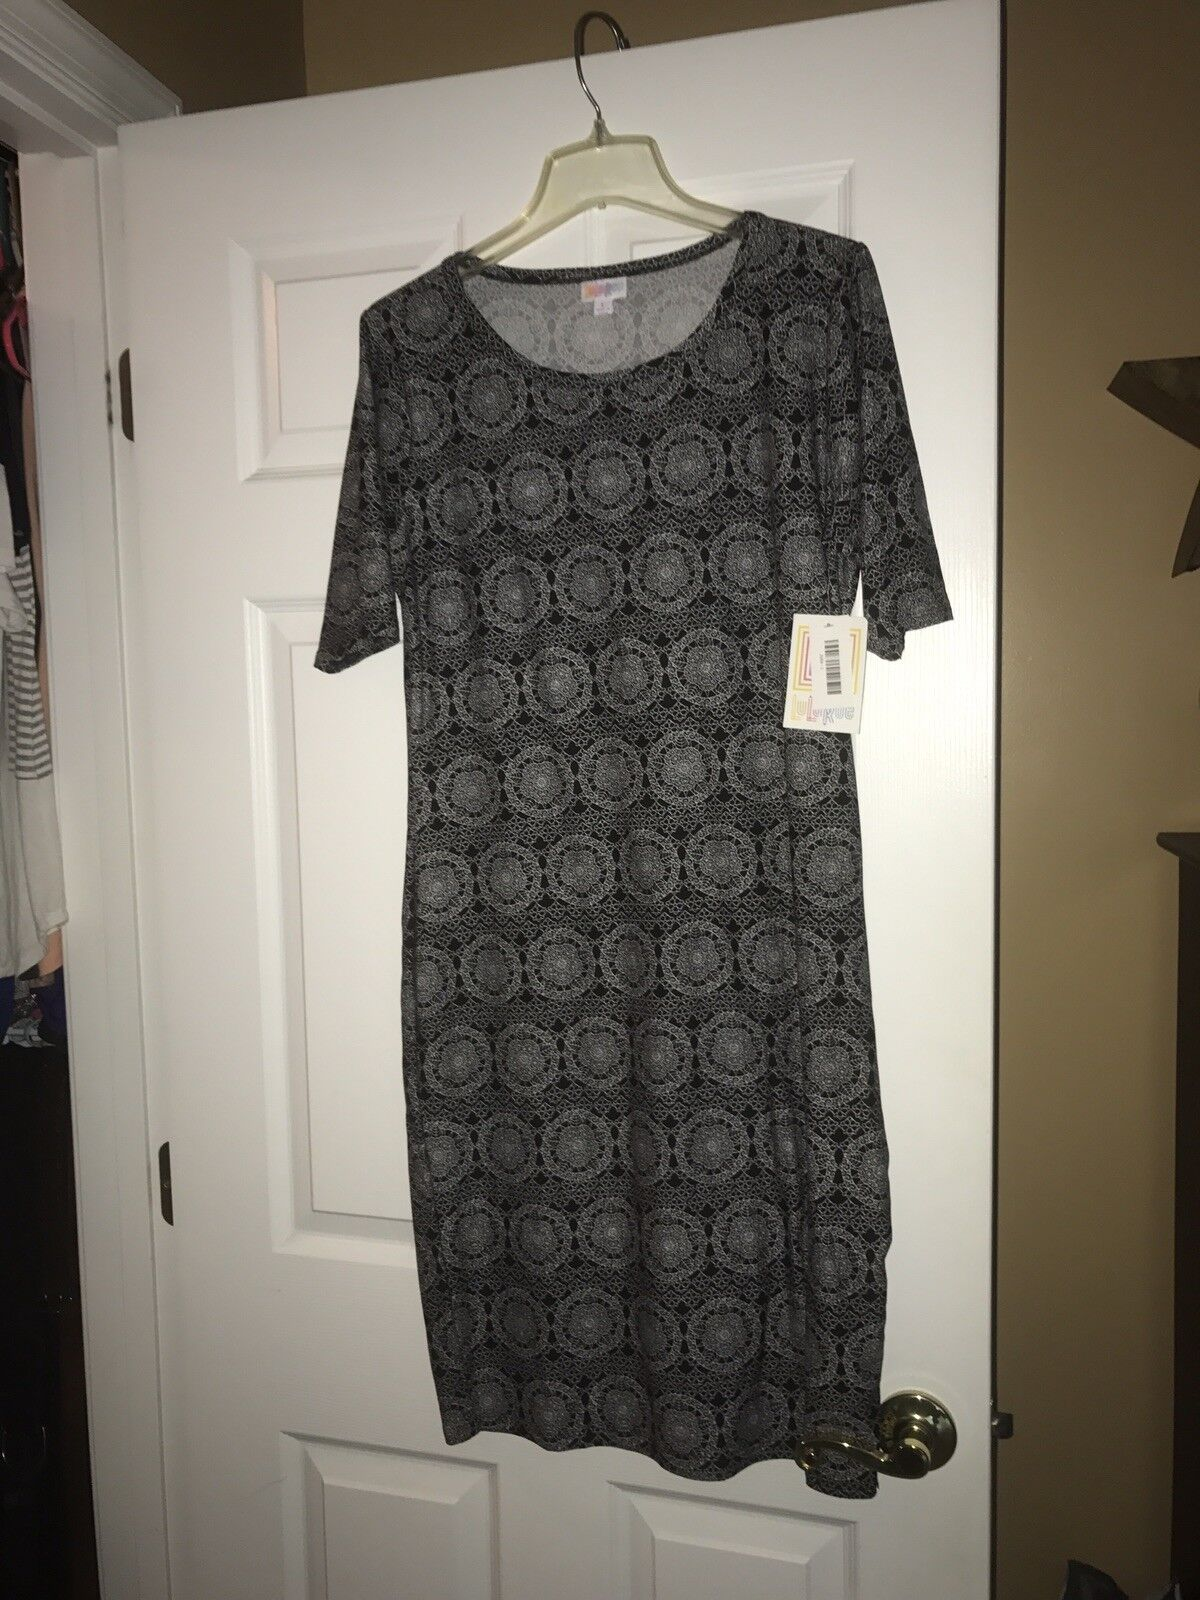 bdcc5b4fe0f758 Lularoe Julia Large New With With With Tag 620454 - dressstore ...